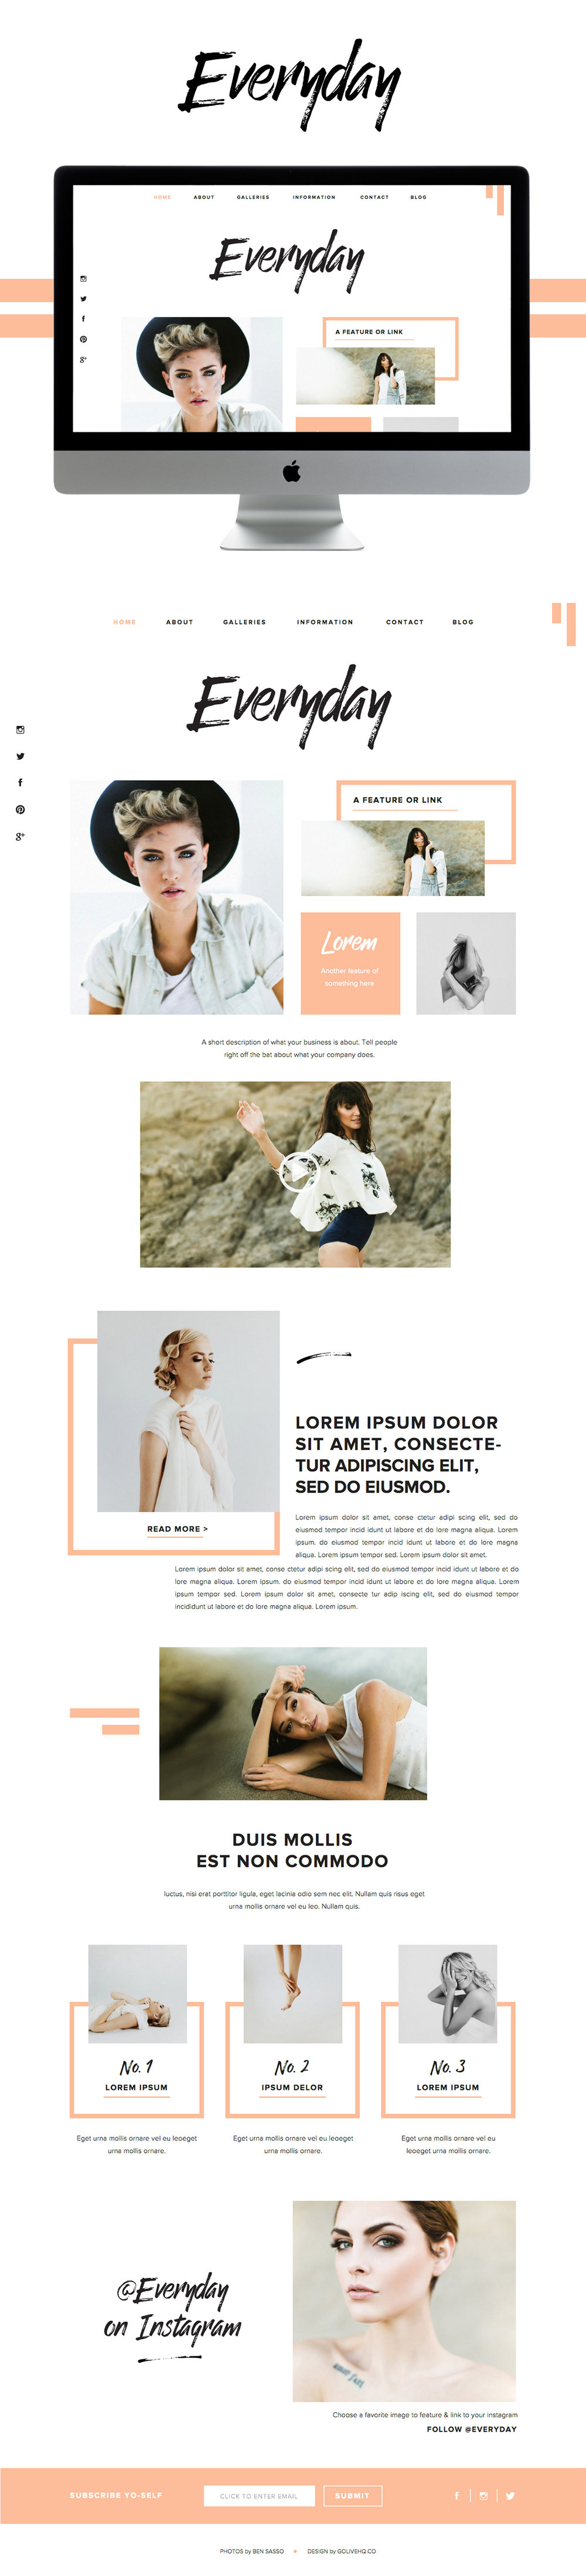 simple modern showit website theme by Go Live Hq